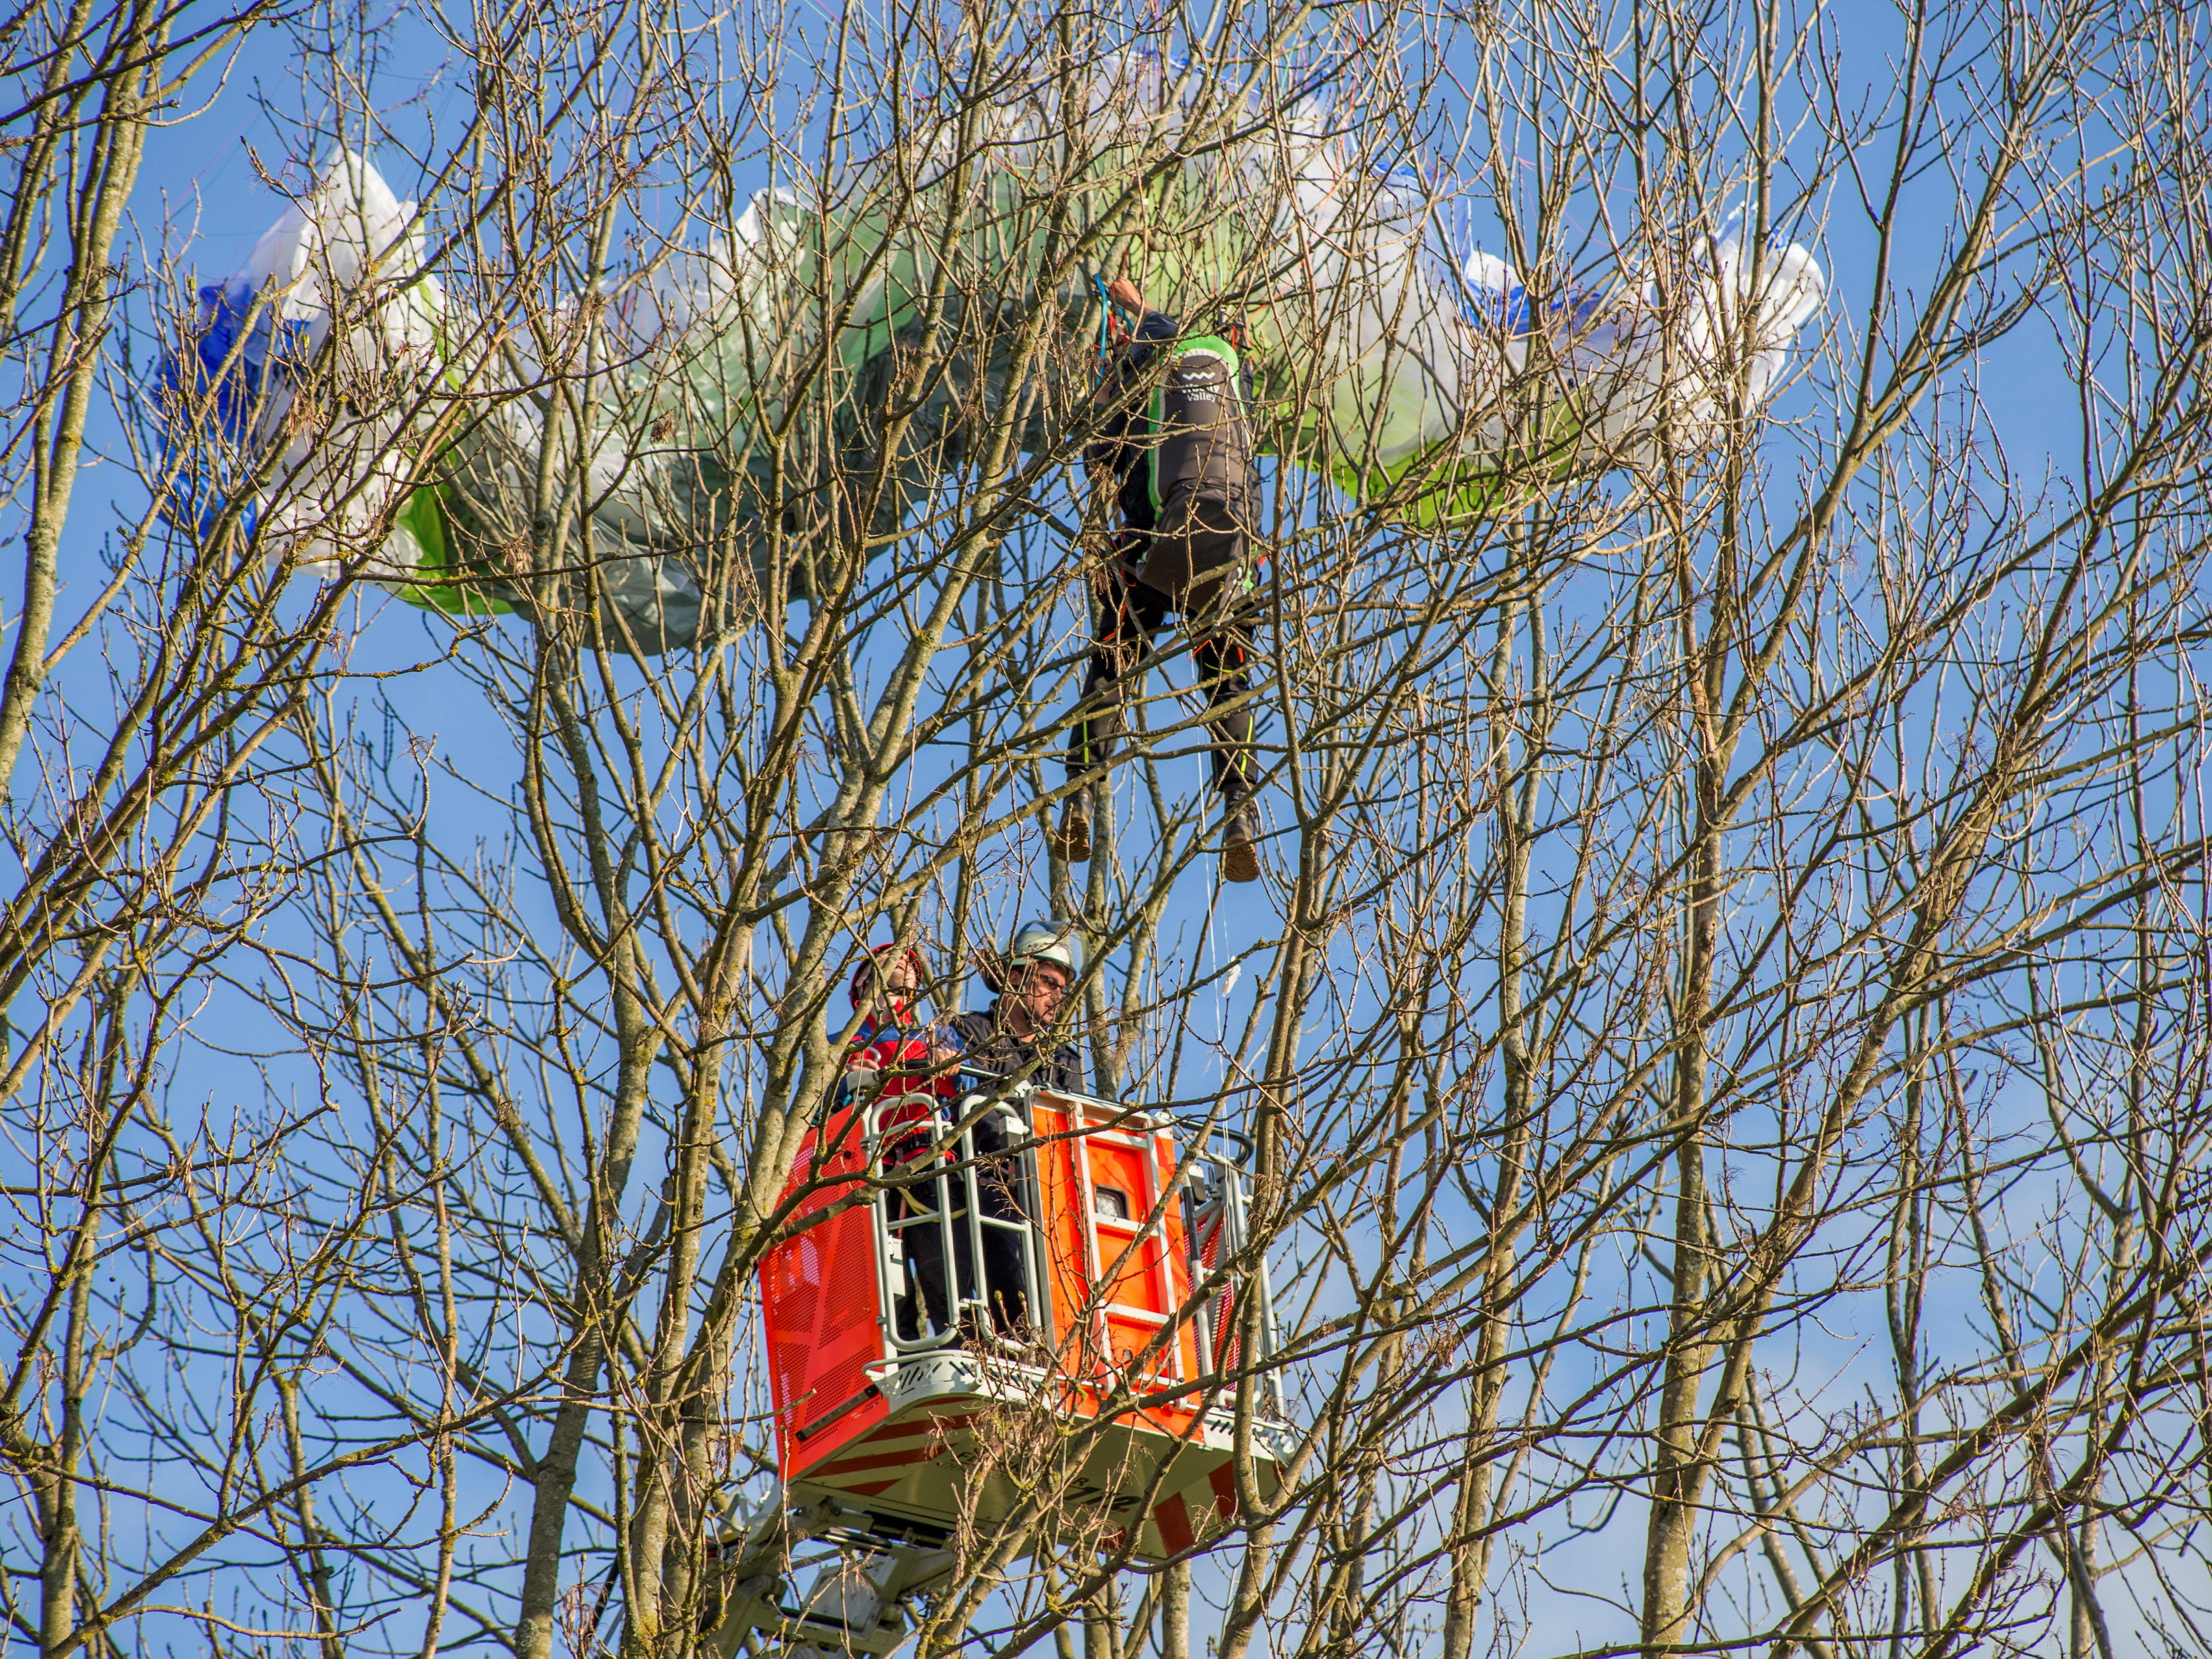 A paraglider is rescued from a tree by fire men in Poppenhausen, central Germany, Monday, April 29,2019.